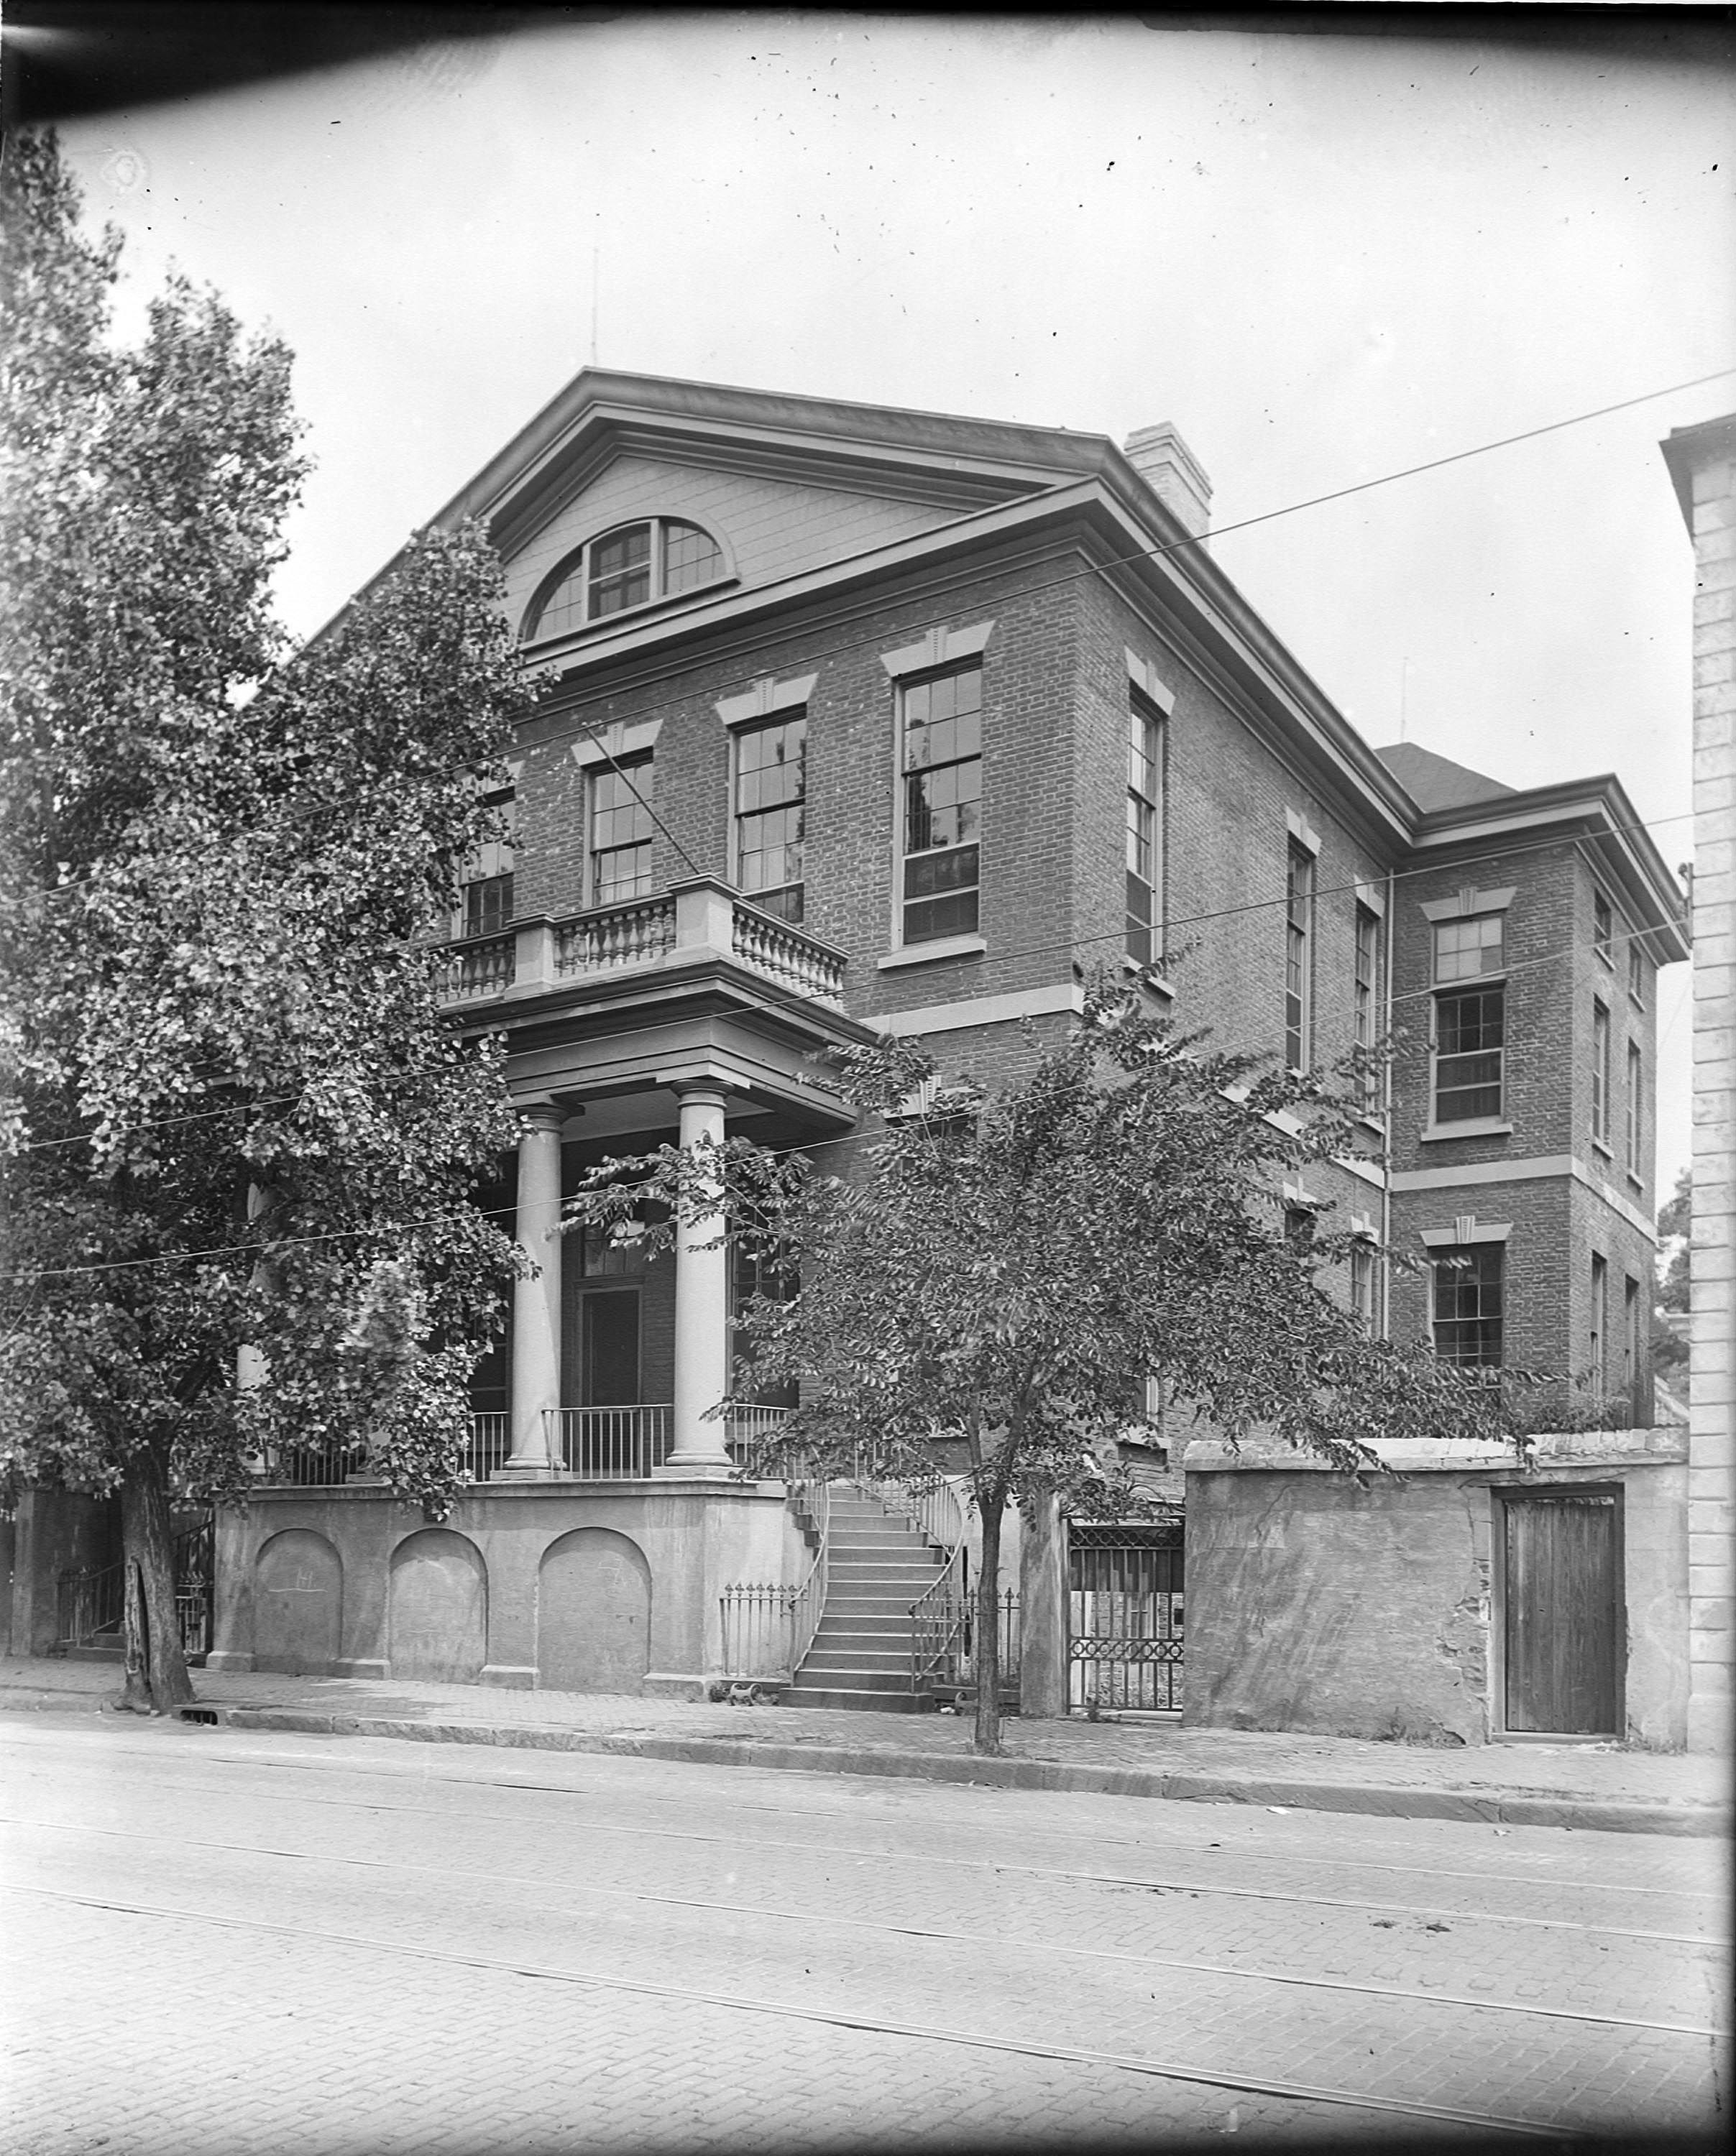 114 Broad Street, Colonel Thomas Pinckney, Jr. House